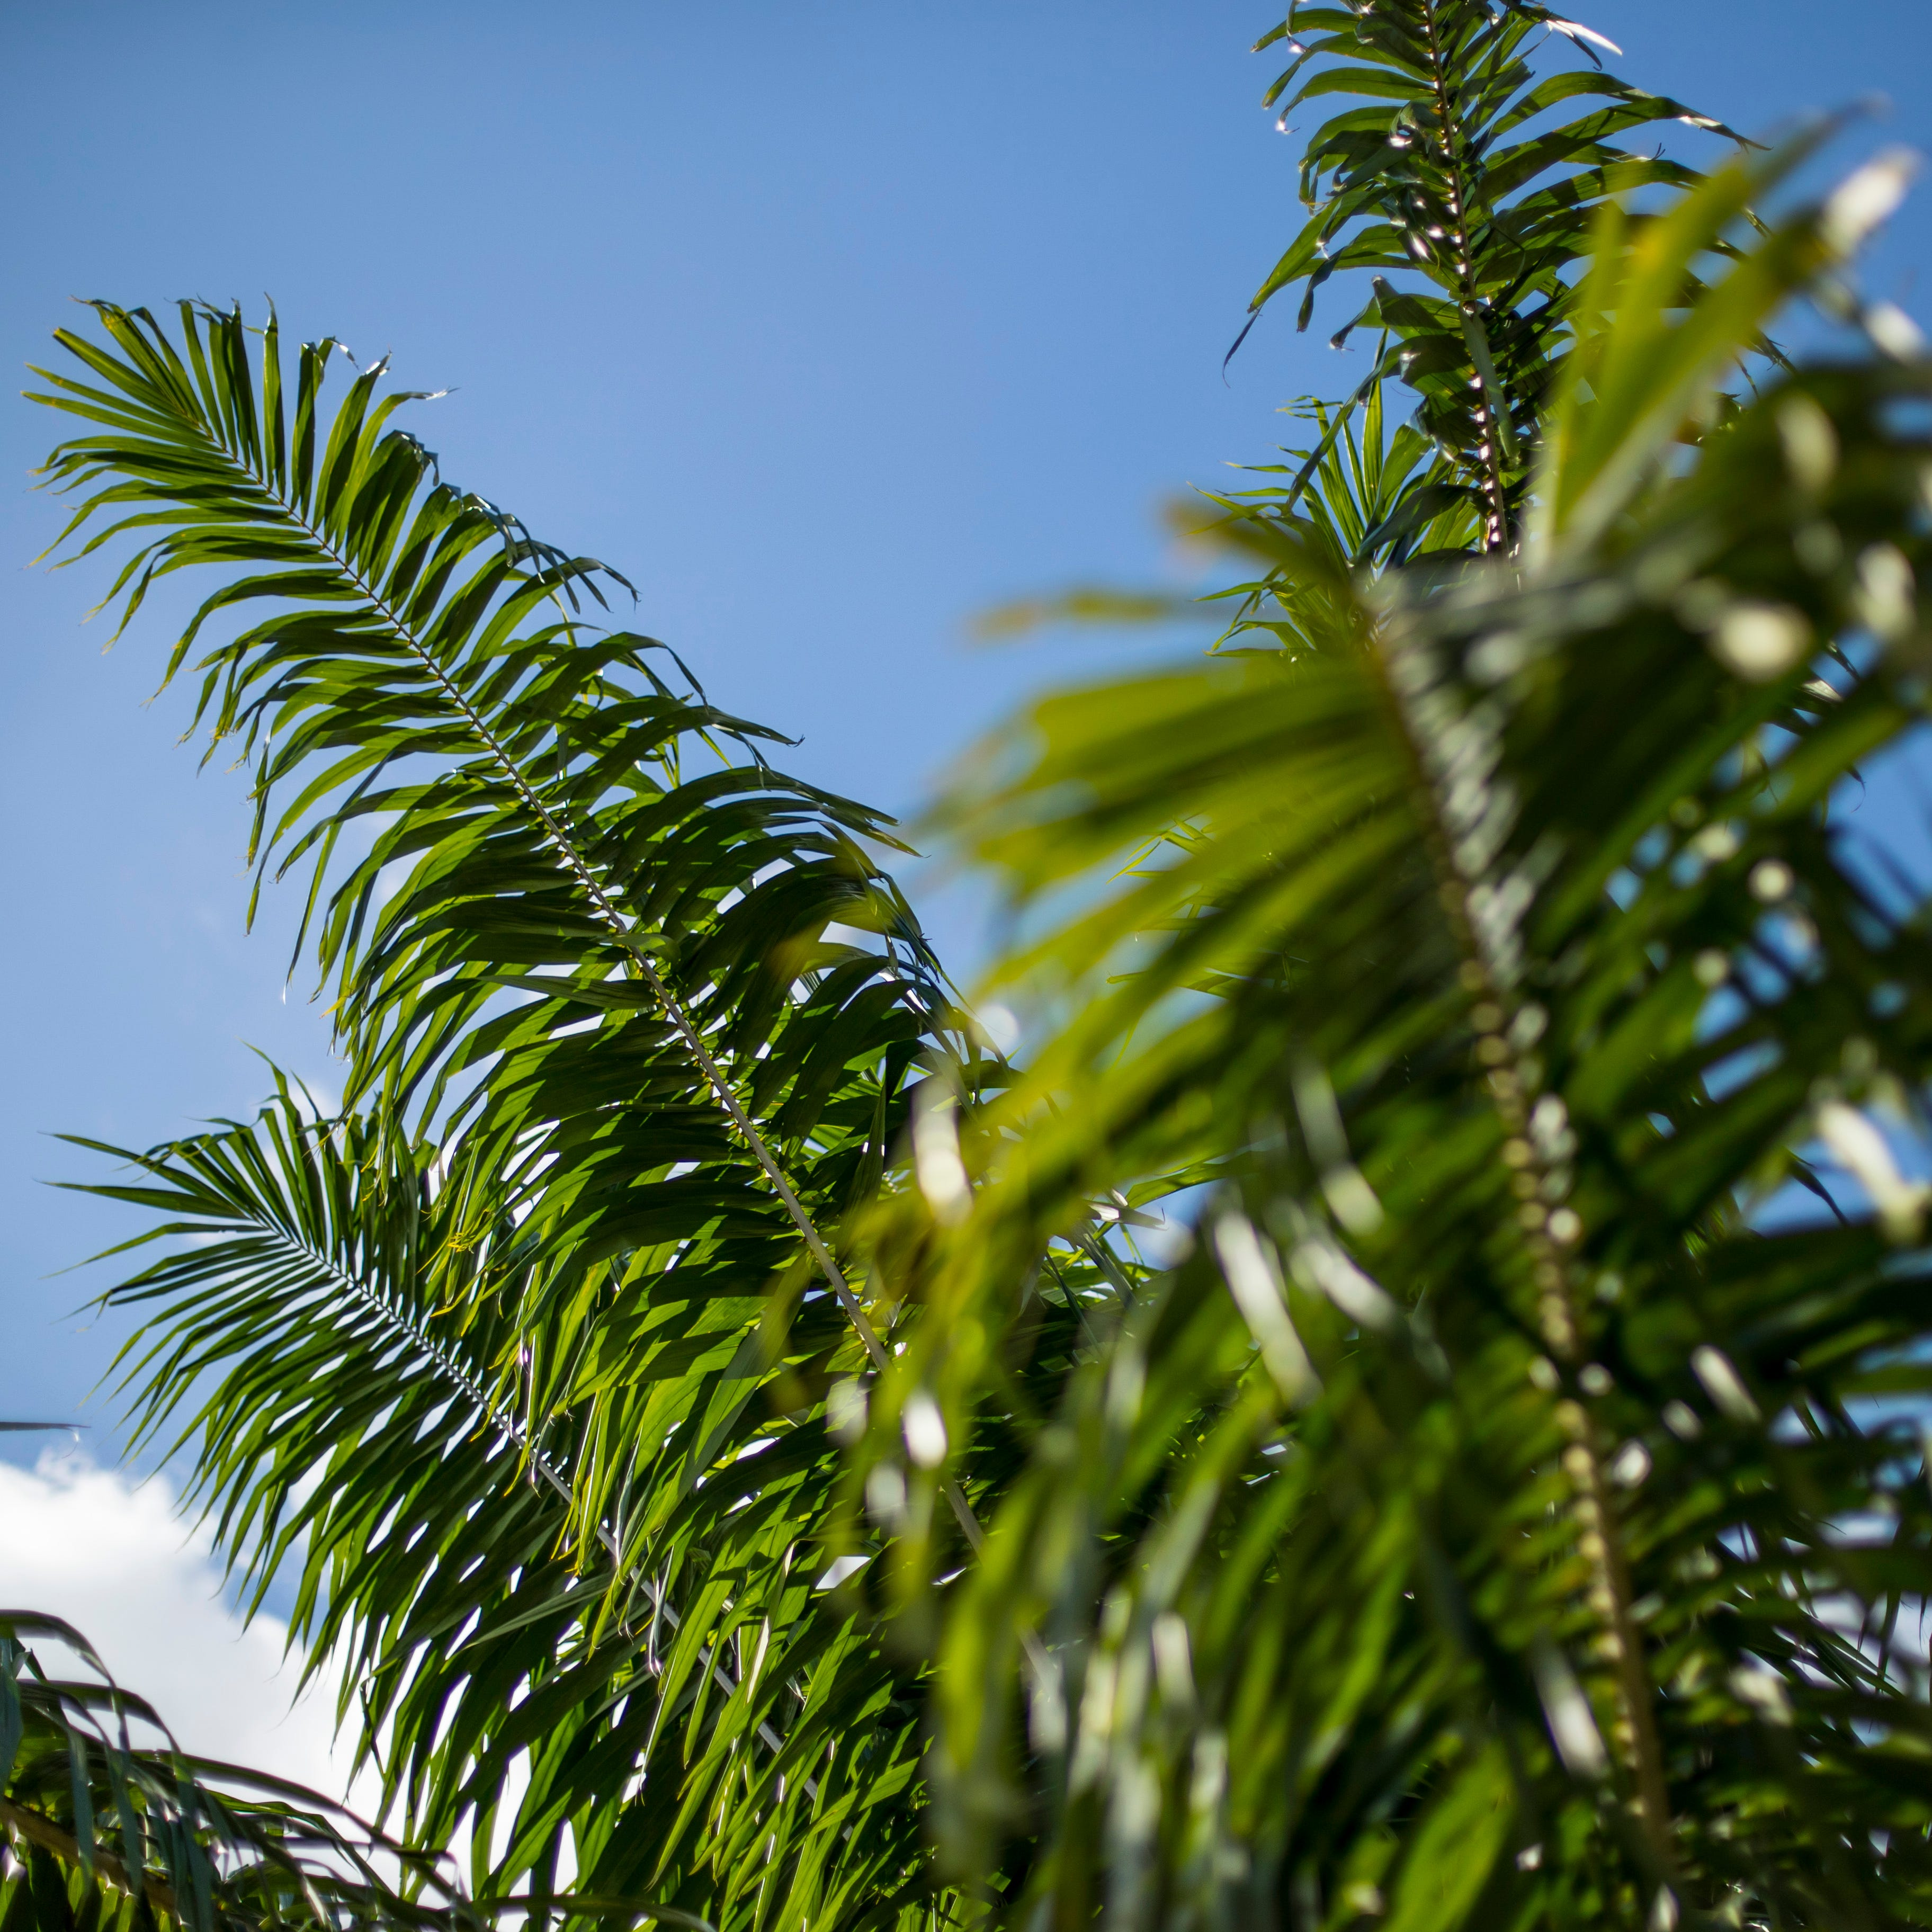 How much do you really know about palms in Florida? Test your Palm IQ